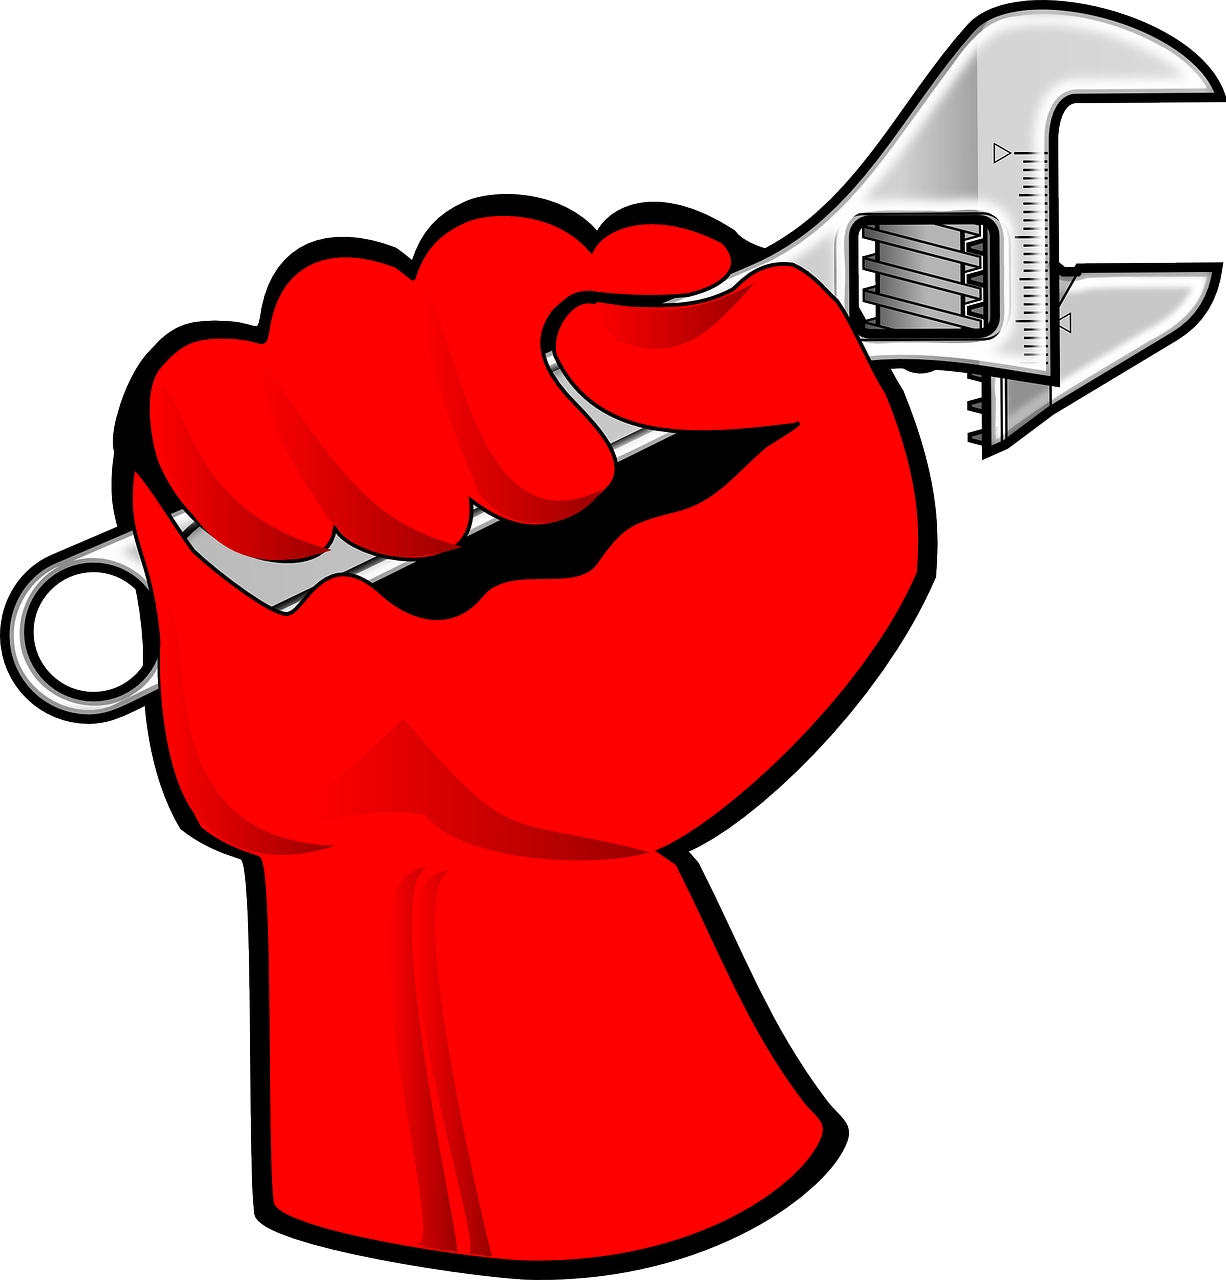 hand fist wrench free photo